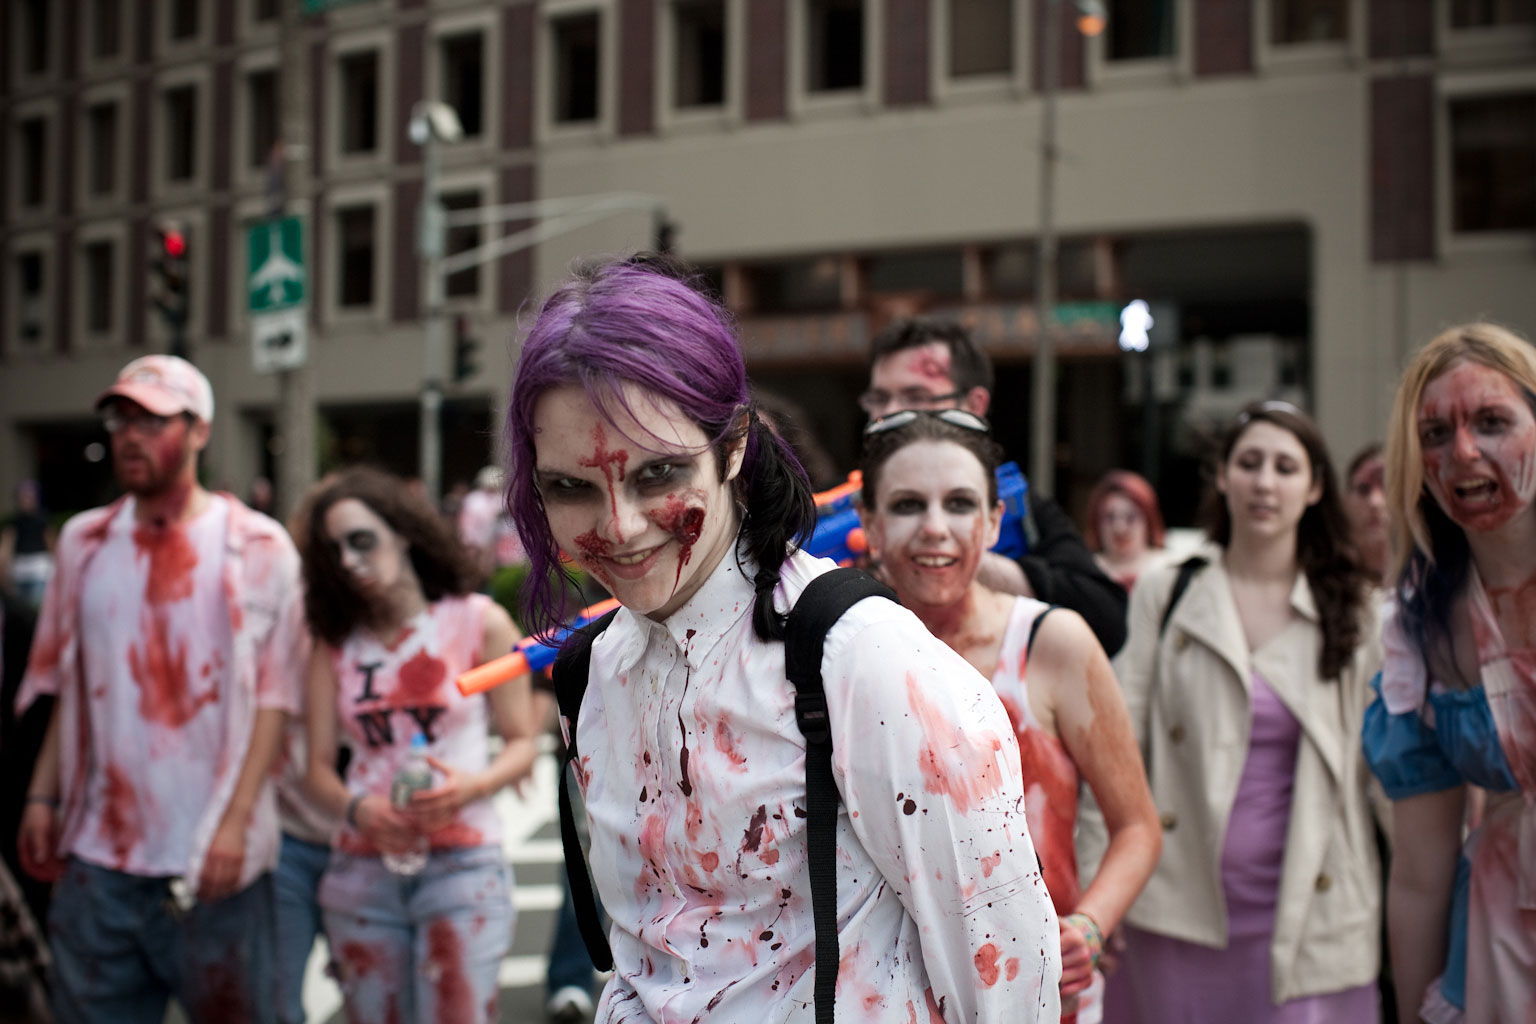 zombie_march_5282010_556